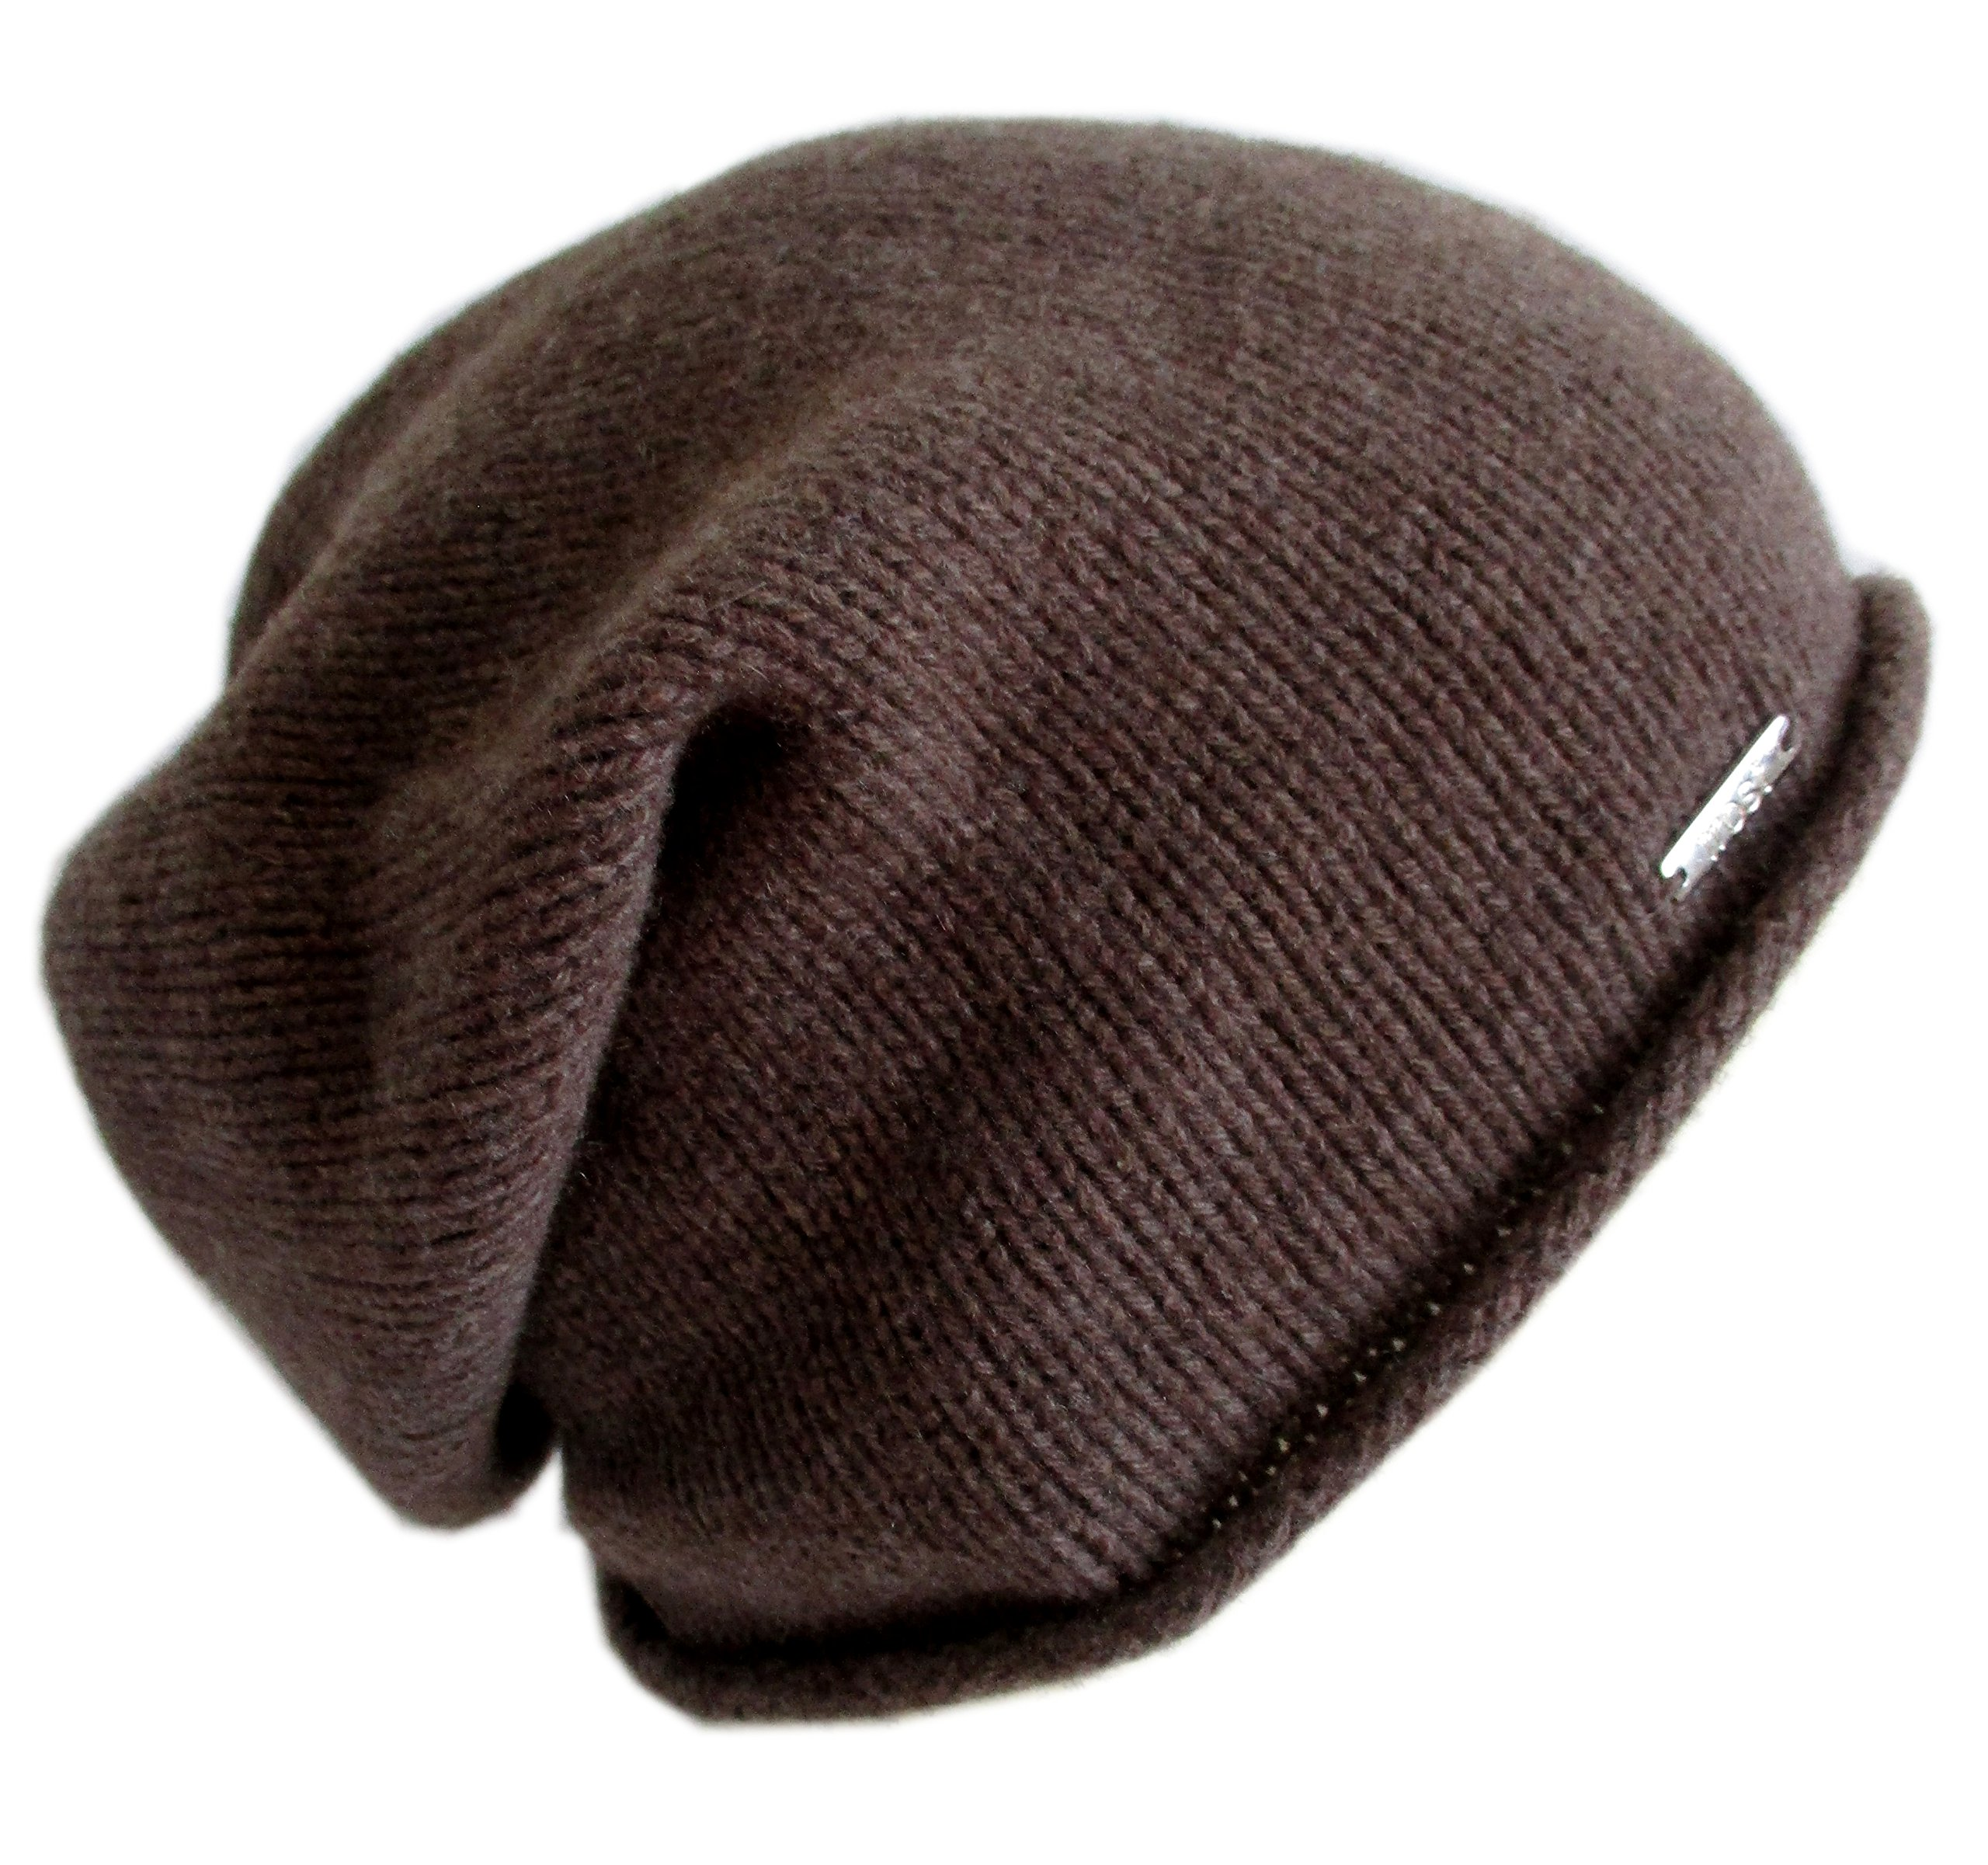 Frost Hats Italian Cashmere Slouchy Unisex Hat CSH-742-W (Brown) by Frost Hats